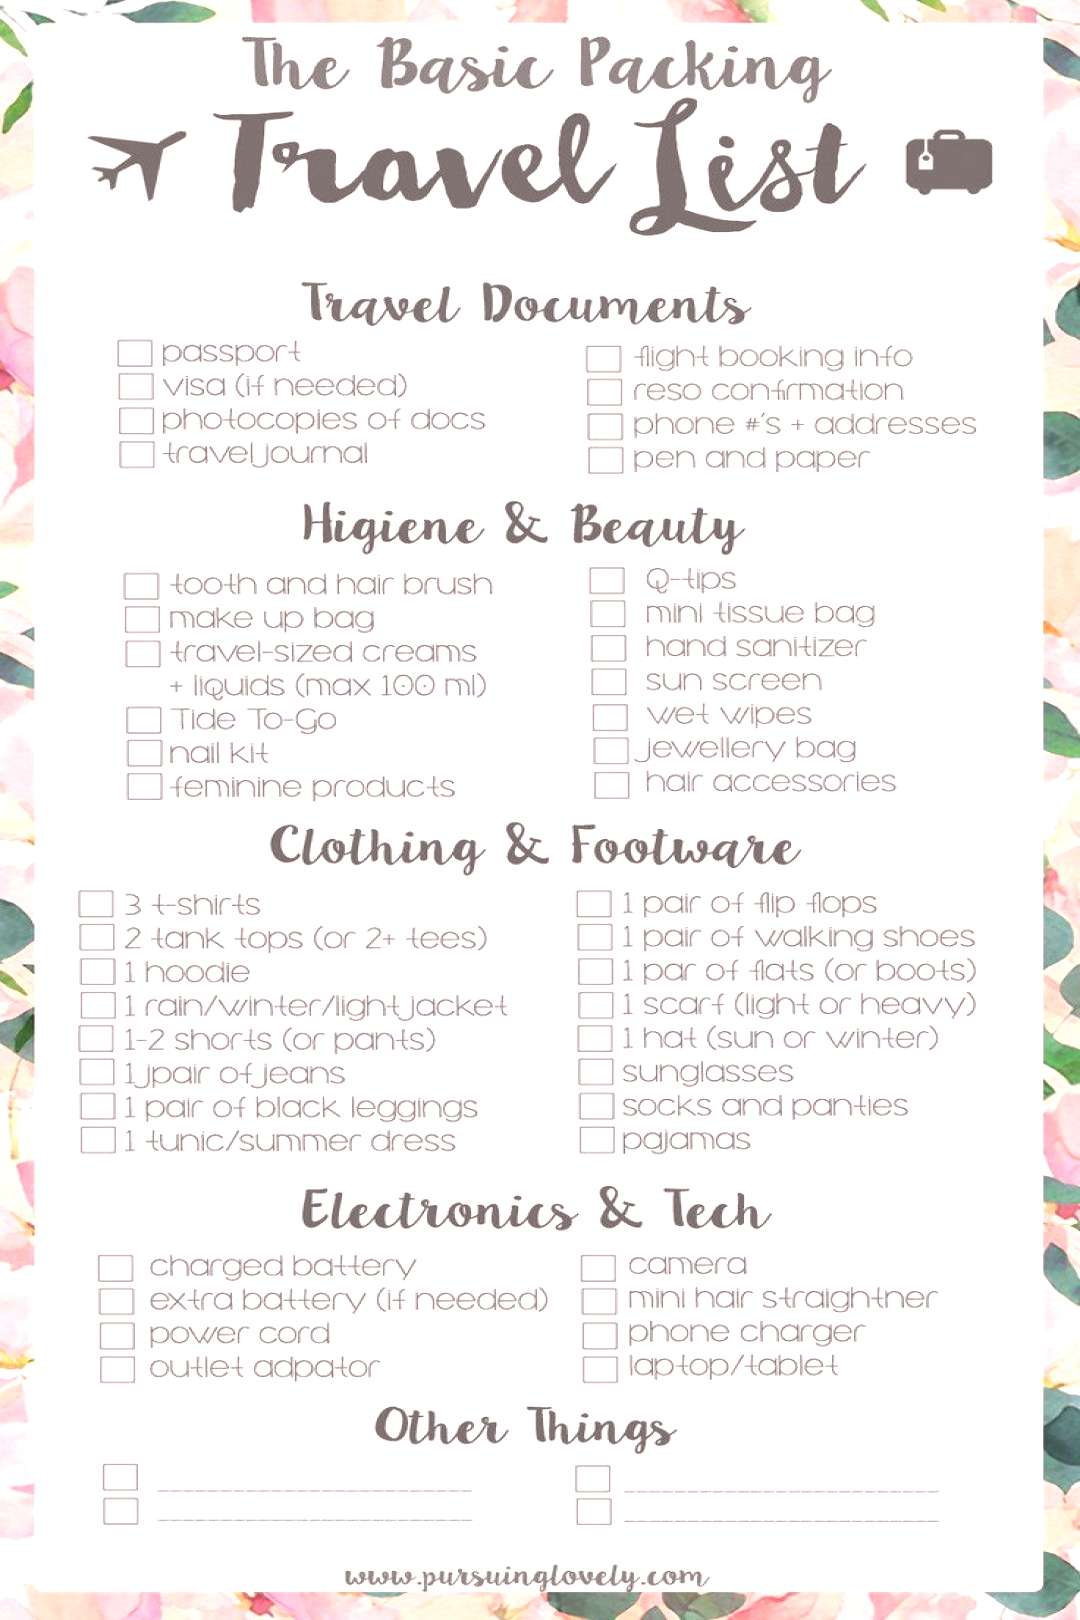 Beach vacation packing list family. Pack travel-size toiletries or in case you have some old hotel